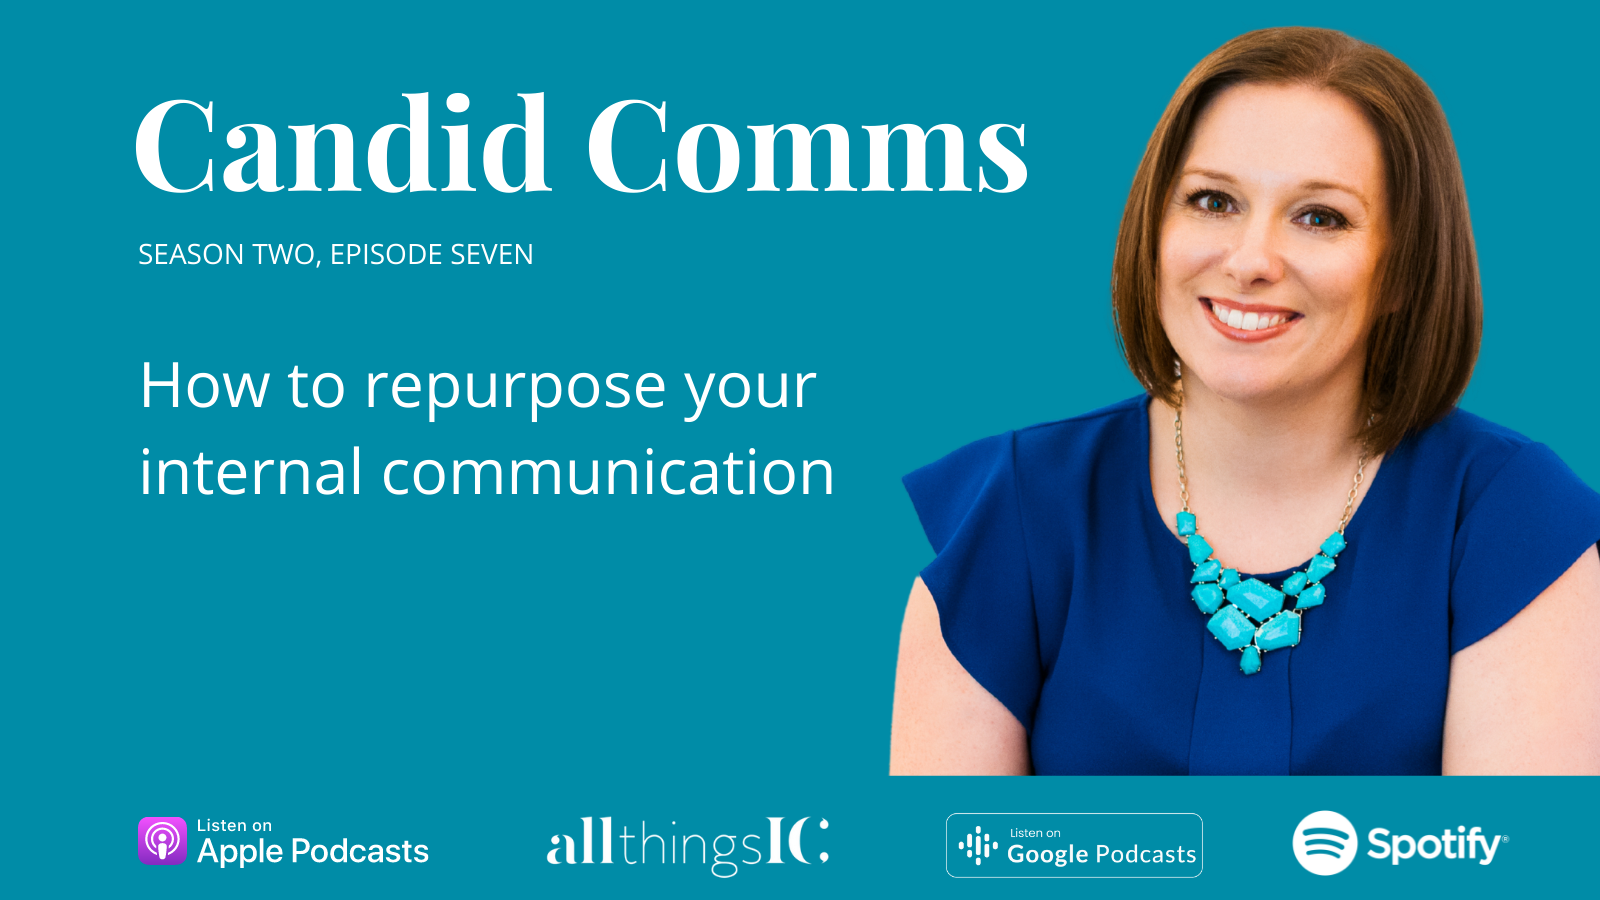 Candid Comms How to repurpose your internal communication